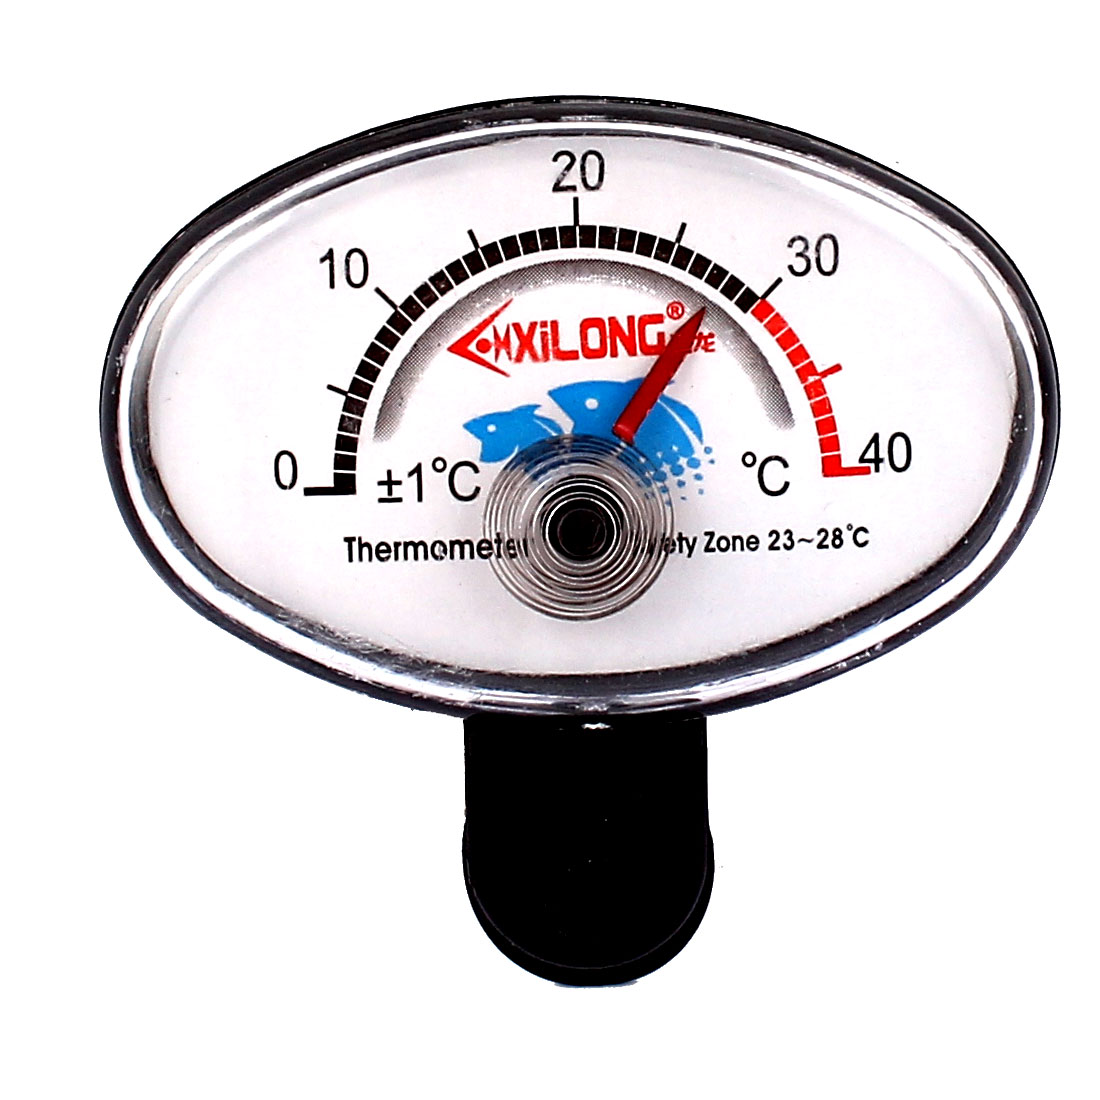 Aquarium Plastic Round Dial 0 to 40 Celsius Degrees Thermometer Hygrometer